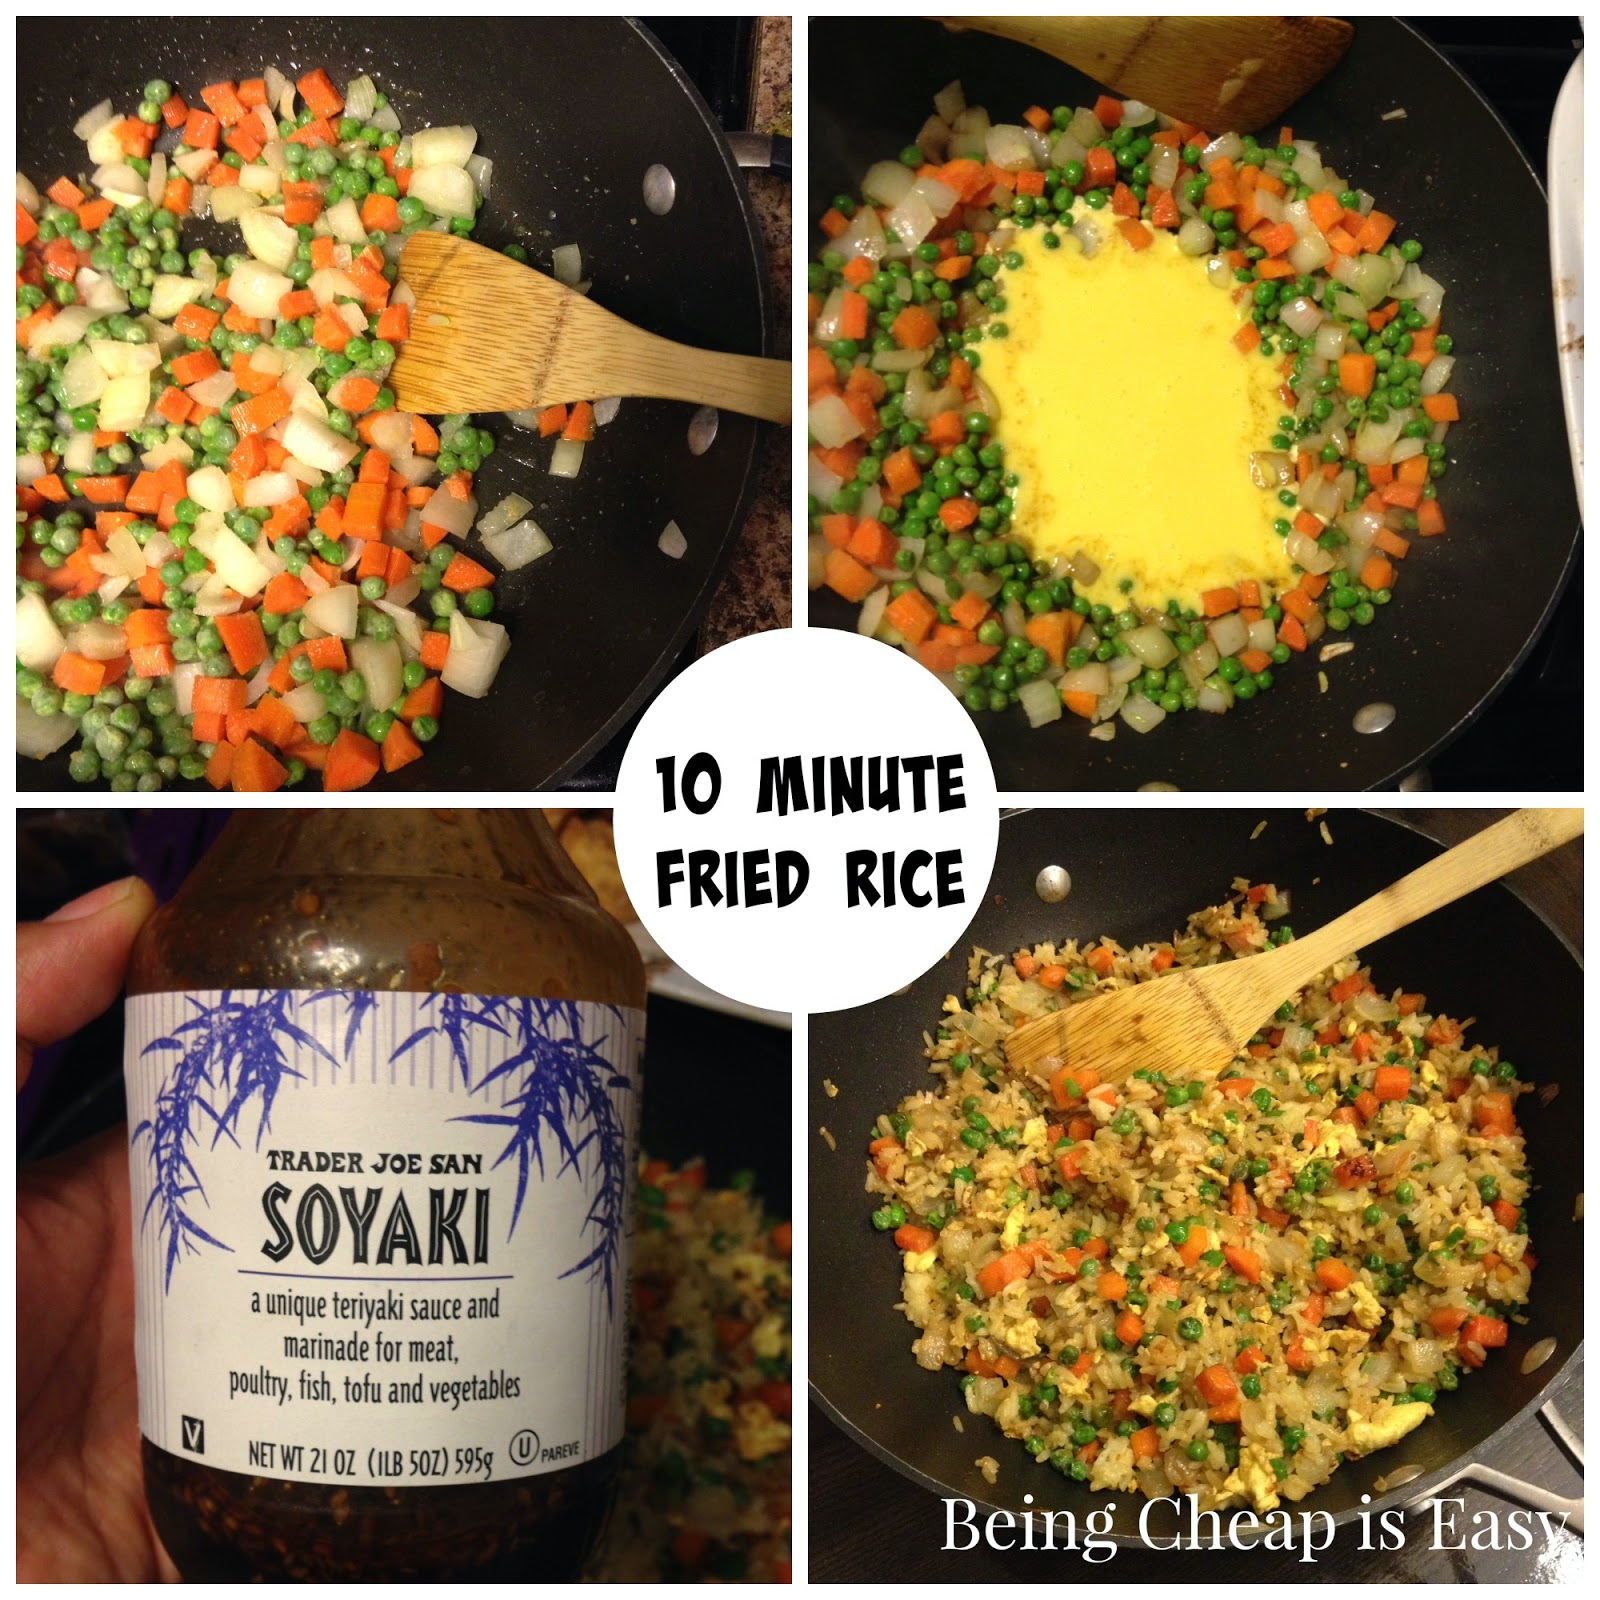 Fried Rice, MYO Takeout, Trader Joe's Soyaki, Simple Suppers, Healthy Dinners, Chinese Food